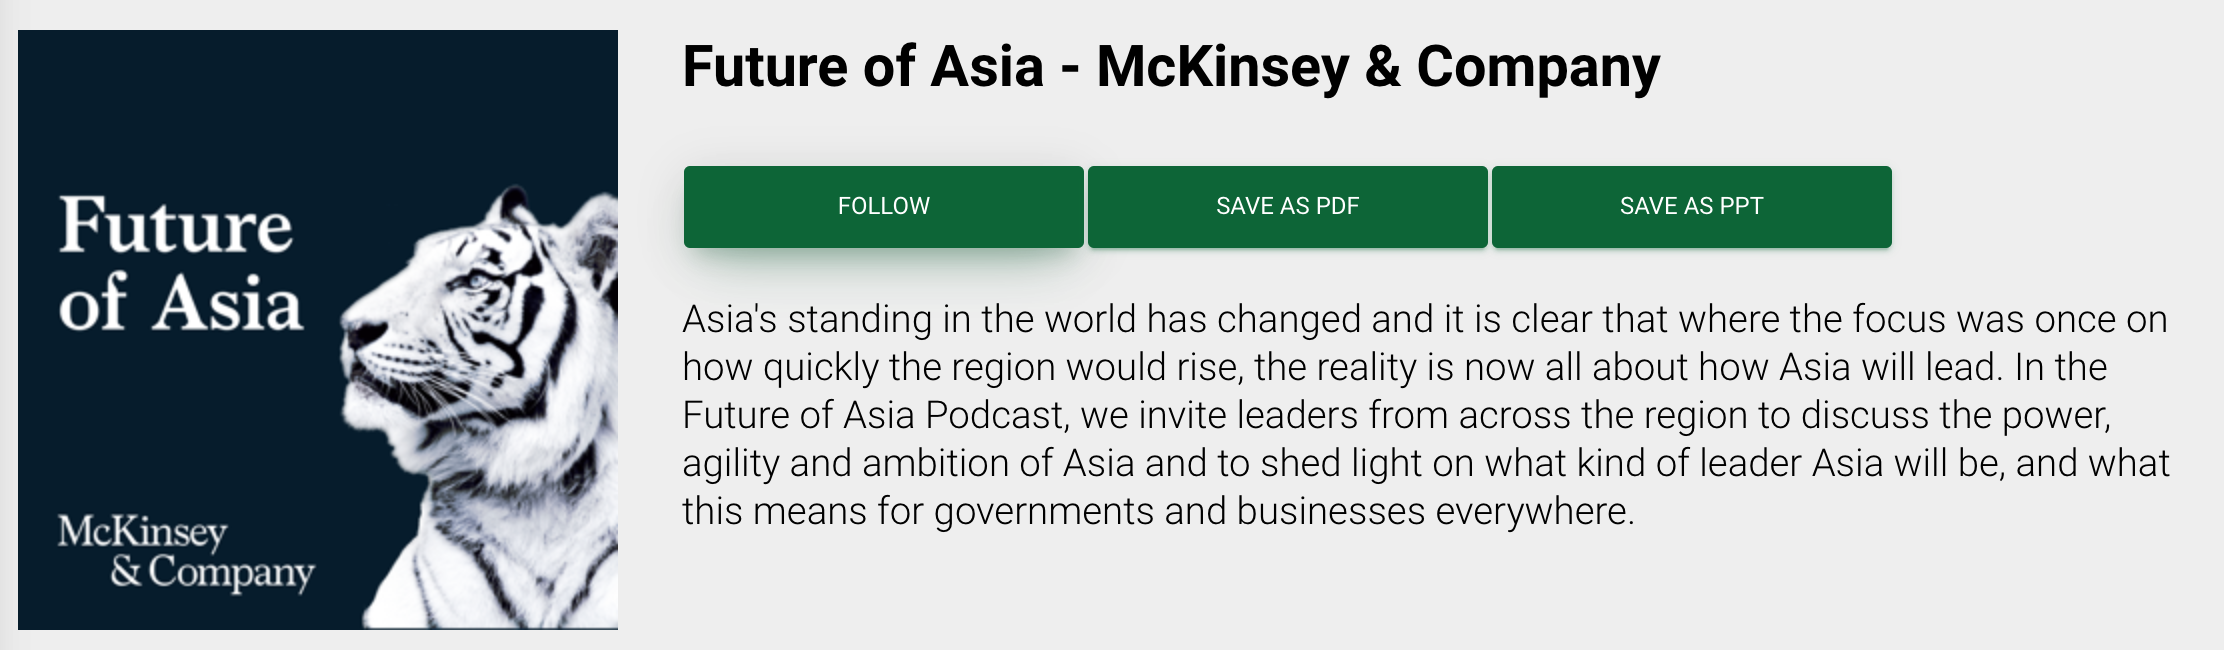 mckinsey-future-of-asia-podcast.png